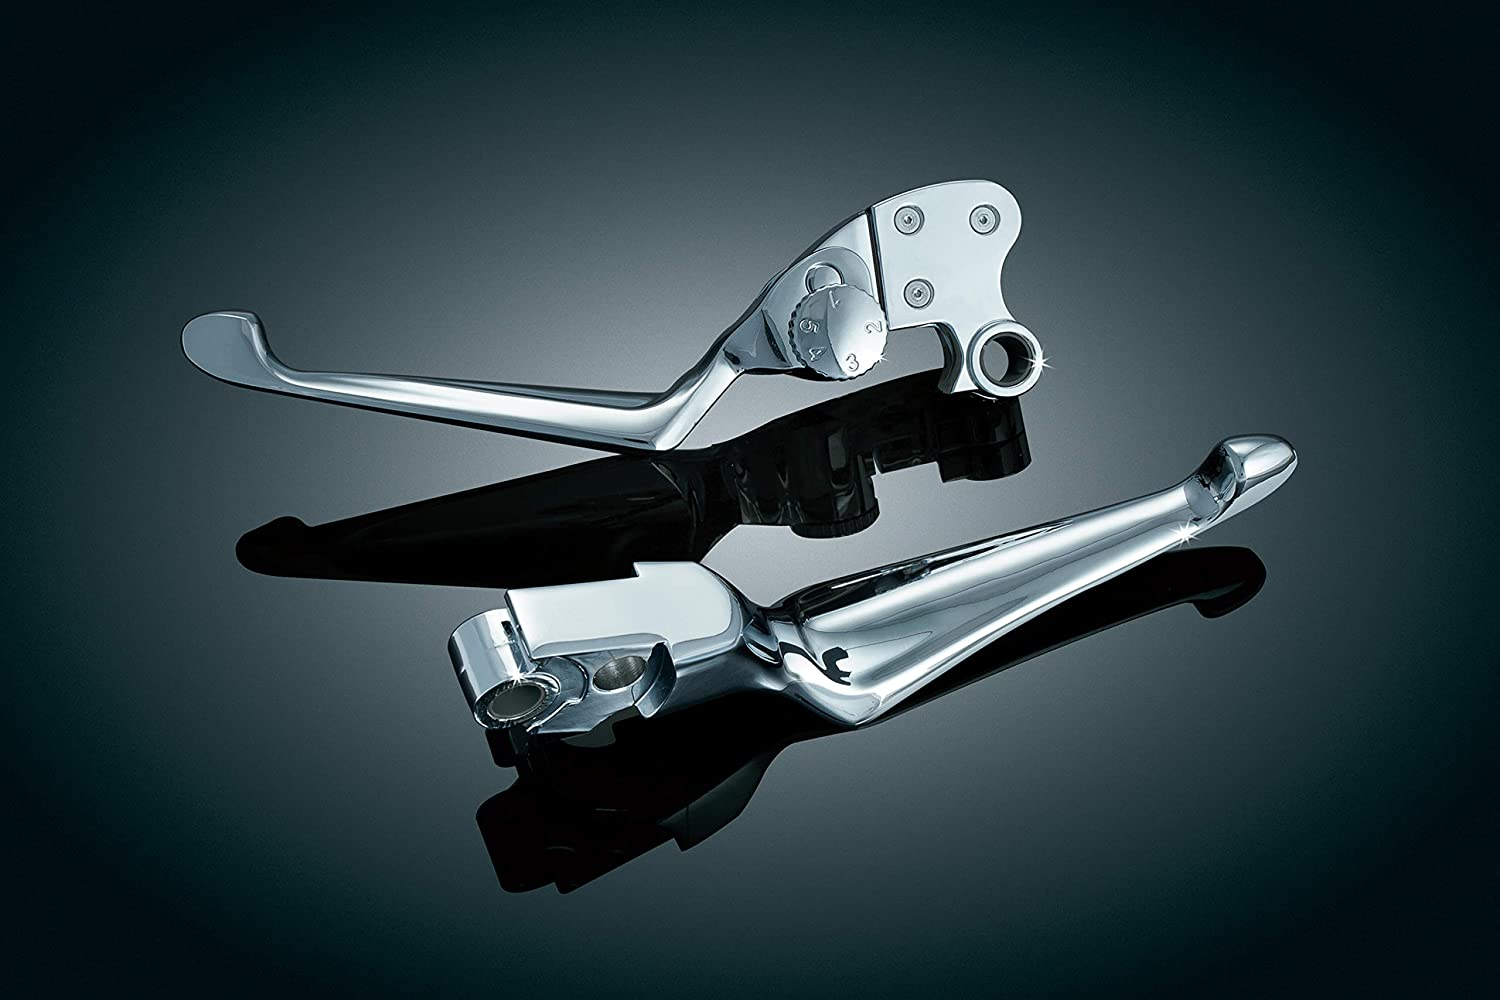 Gloss Black Clutch and Brake Trigger Levers for 1996-2017 Harley-Davidson Motorcycles with Cable Clutch Kuryakyn 1845 Motorcycle Handlebar Accessory 1 Pair